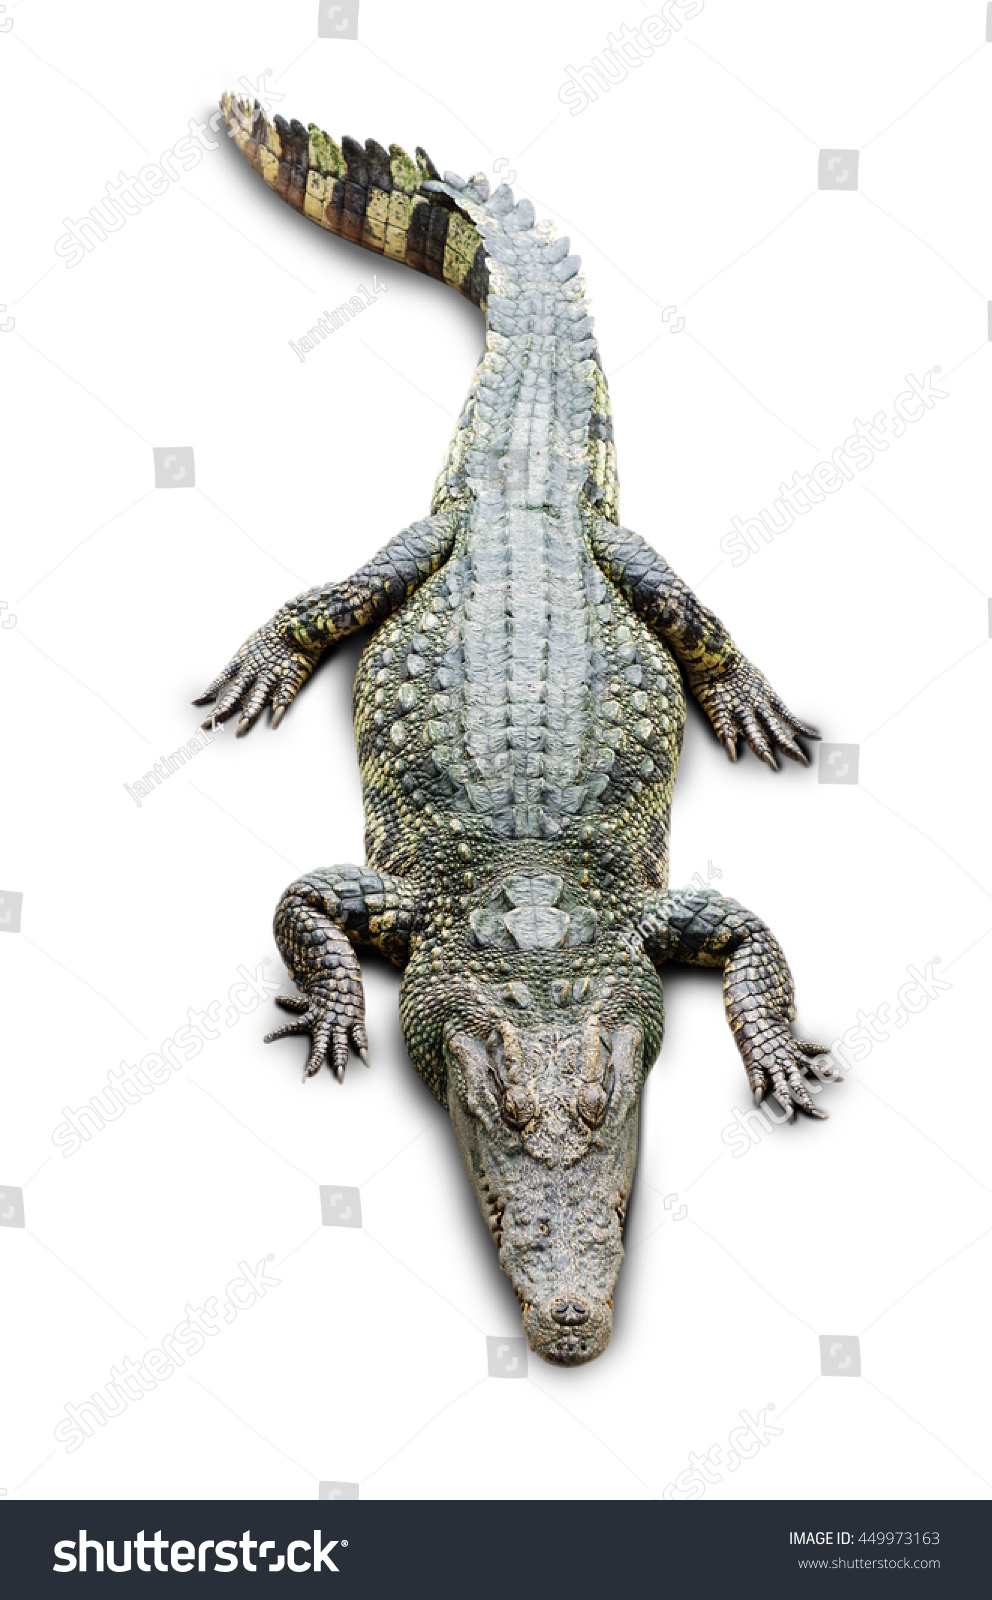 crocodile on the white background